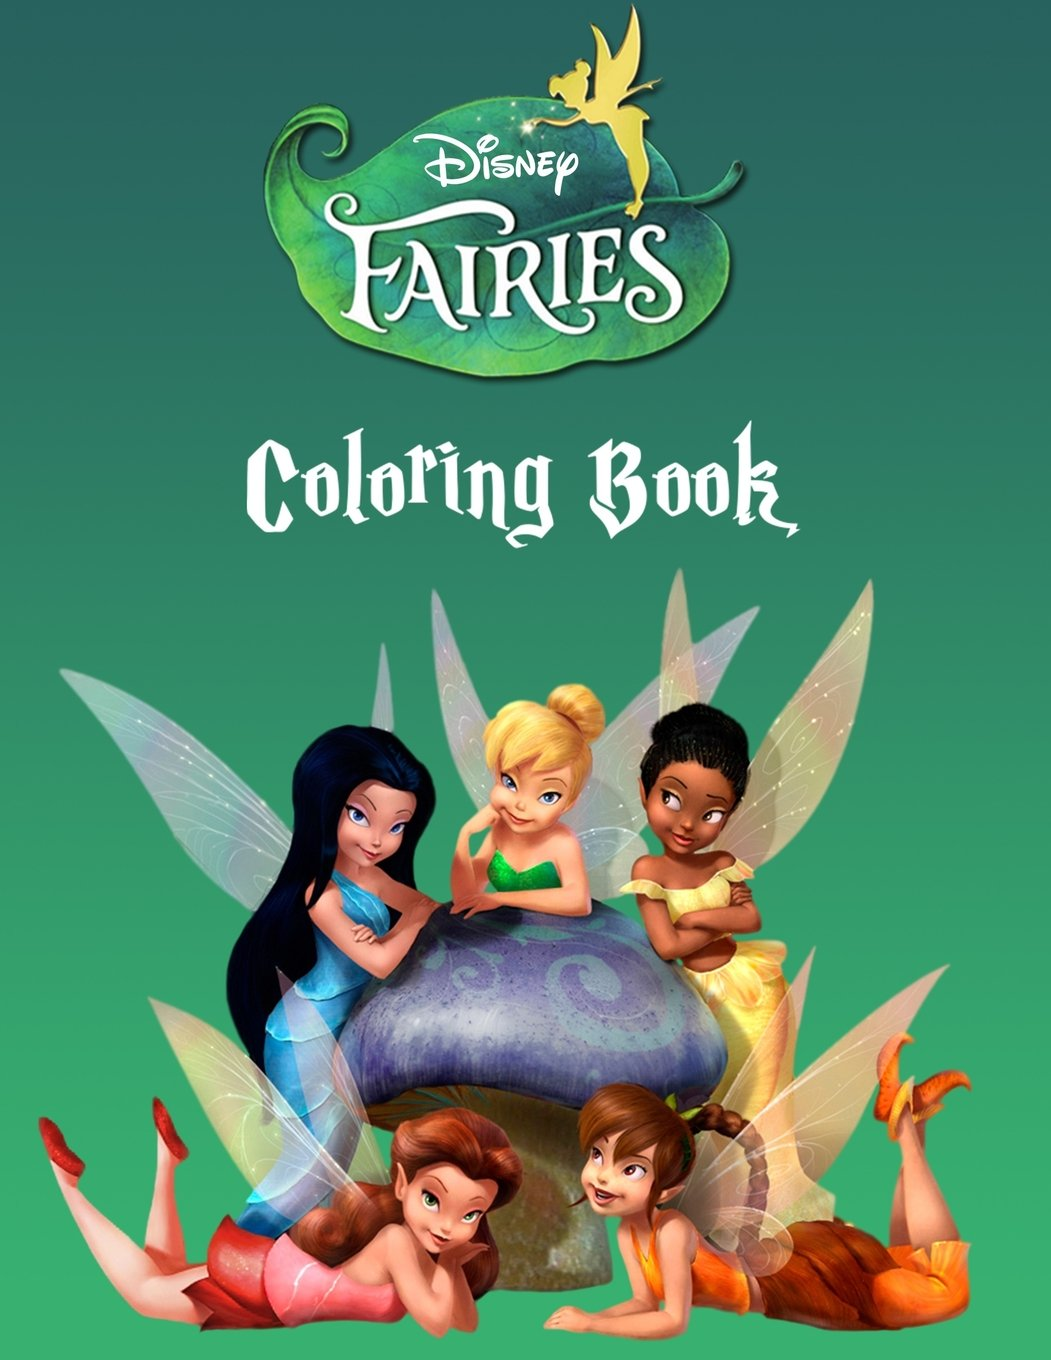 Disney Fairies: Coloring Book for Kids and Adults, Activity Book, Great Starter Book for Children (Coloring Book for Adults Relaxation and for Kids Ages 4-12)